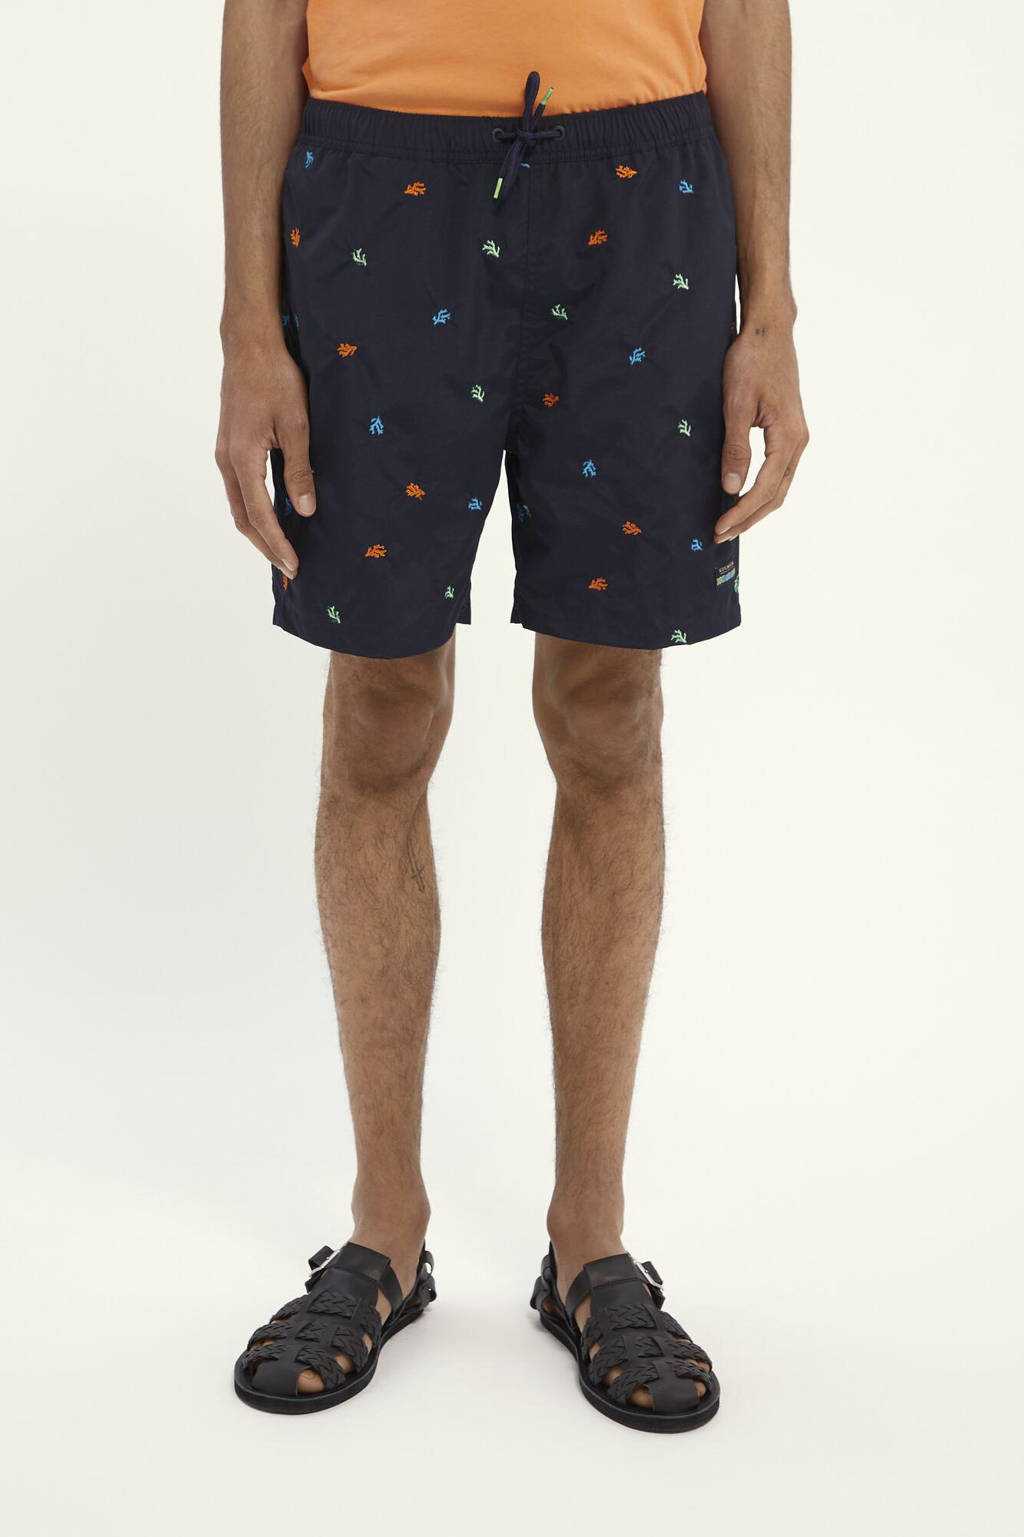 Scotch & Soda zwemshort met all over print donkerblauw, Donkerblauw